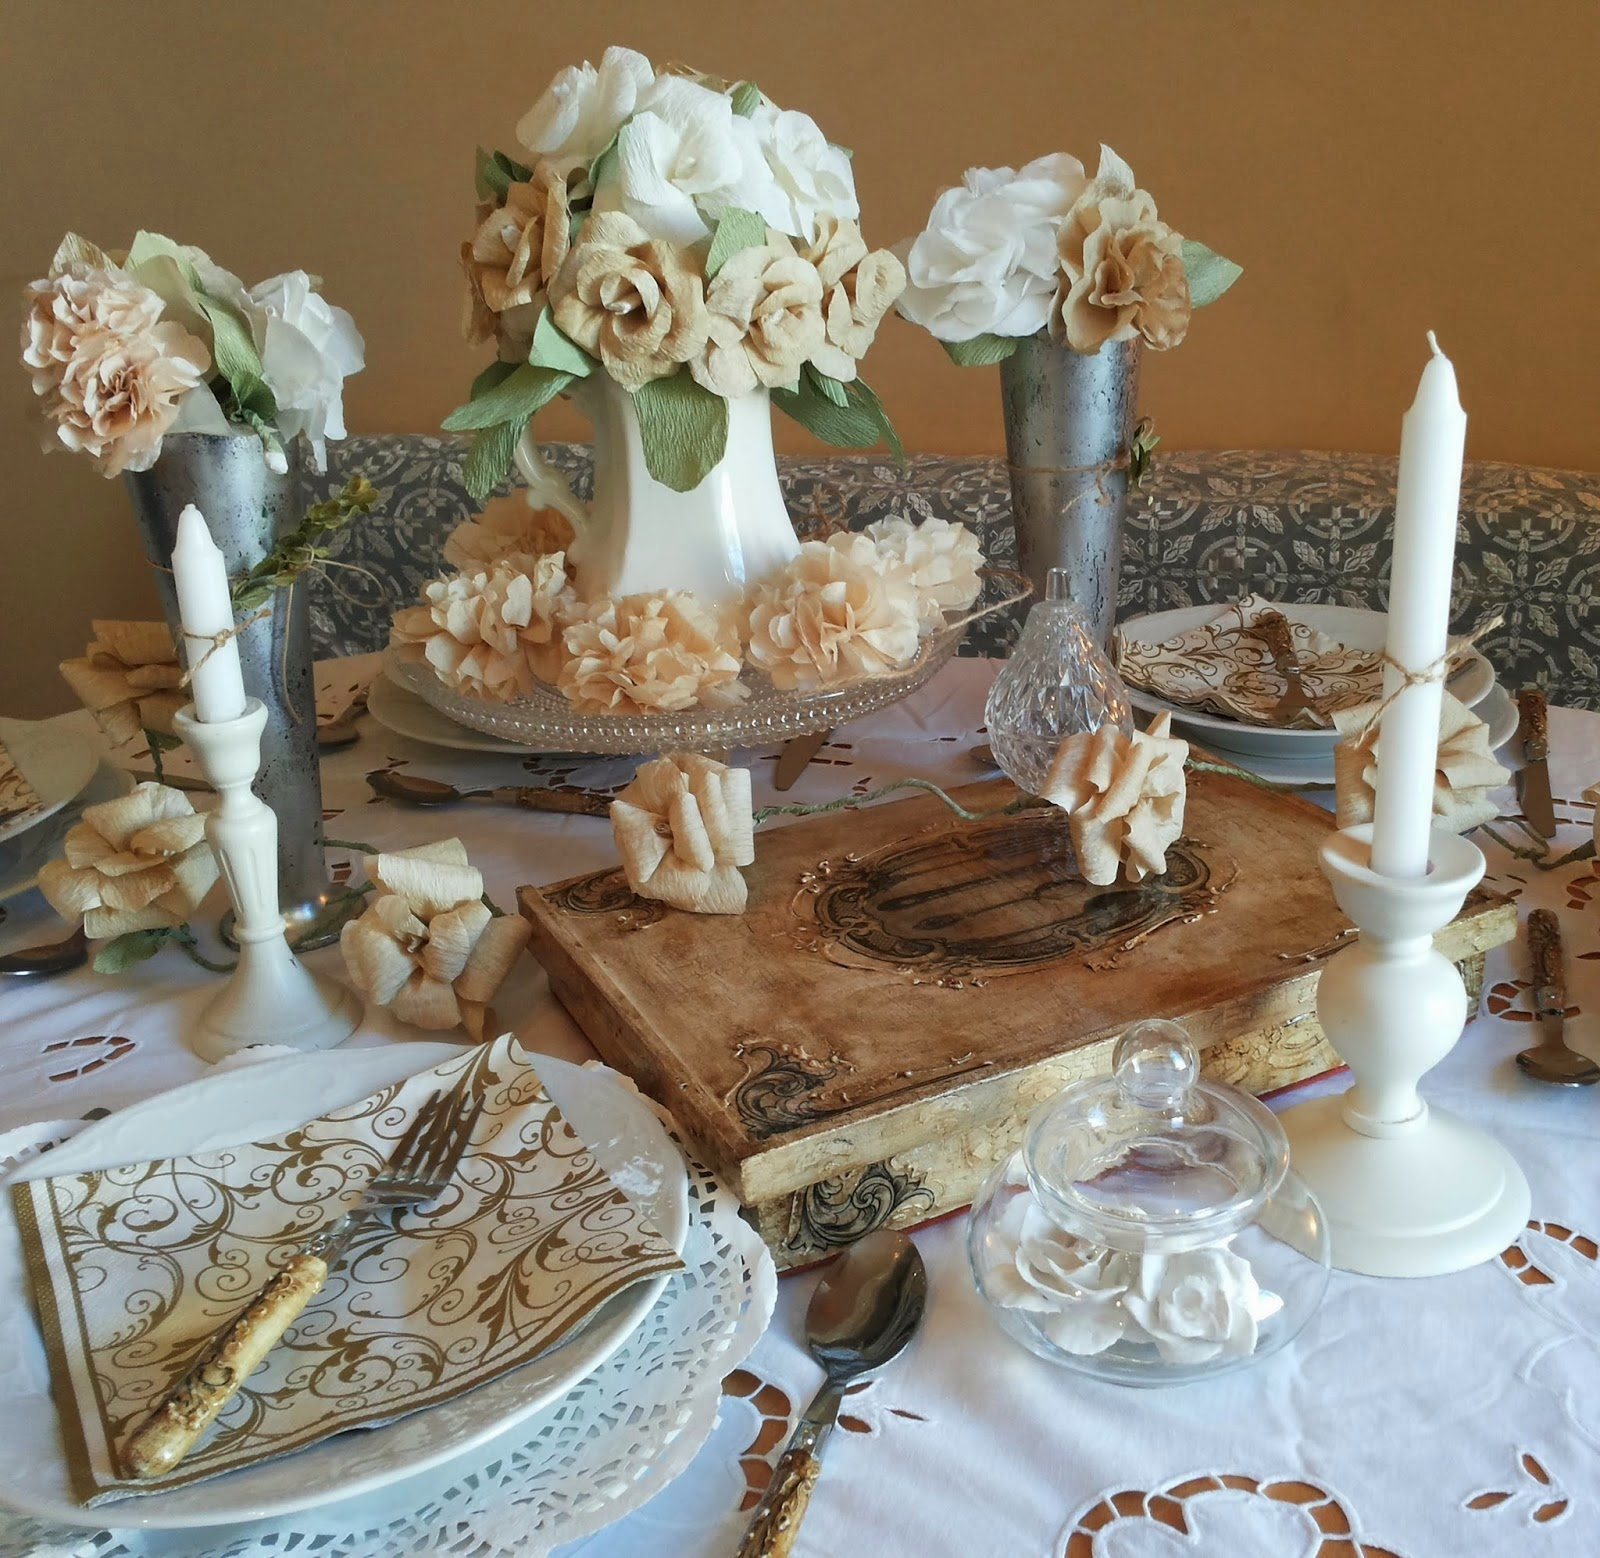 Martinel Art shared her Summer Vintage Table featured at One More Time Events.com